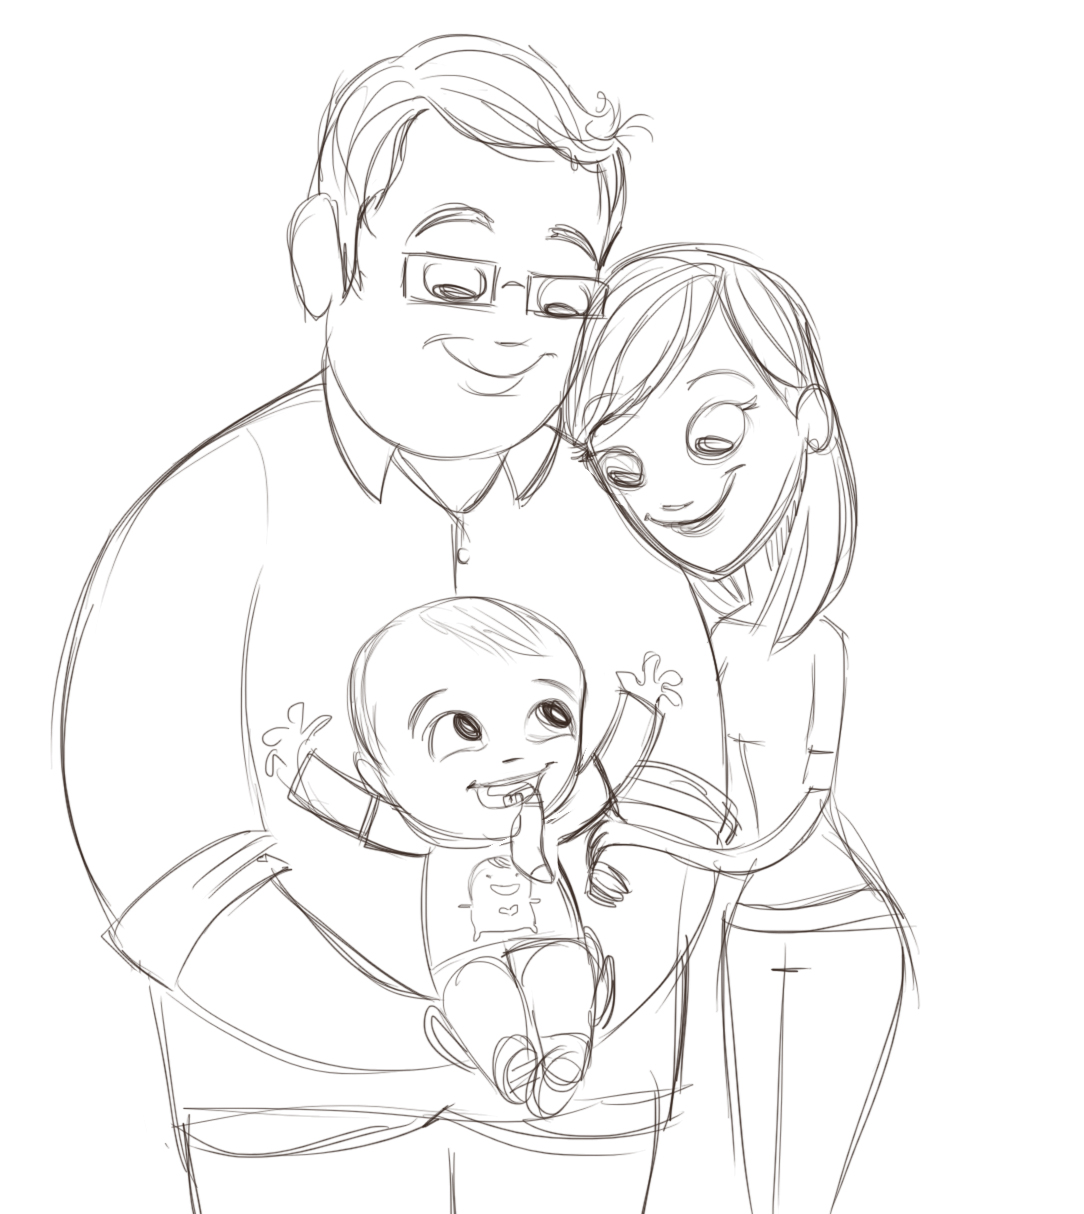 1084x1214 Penguin Stands Alone Family Sketch.